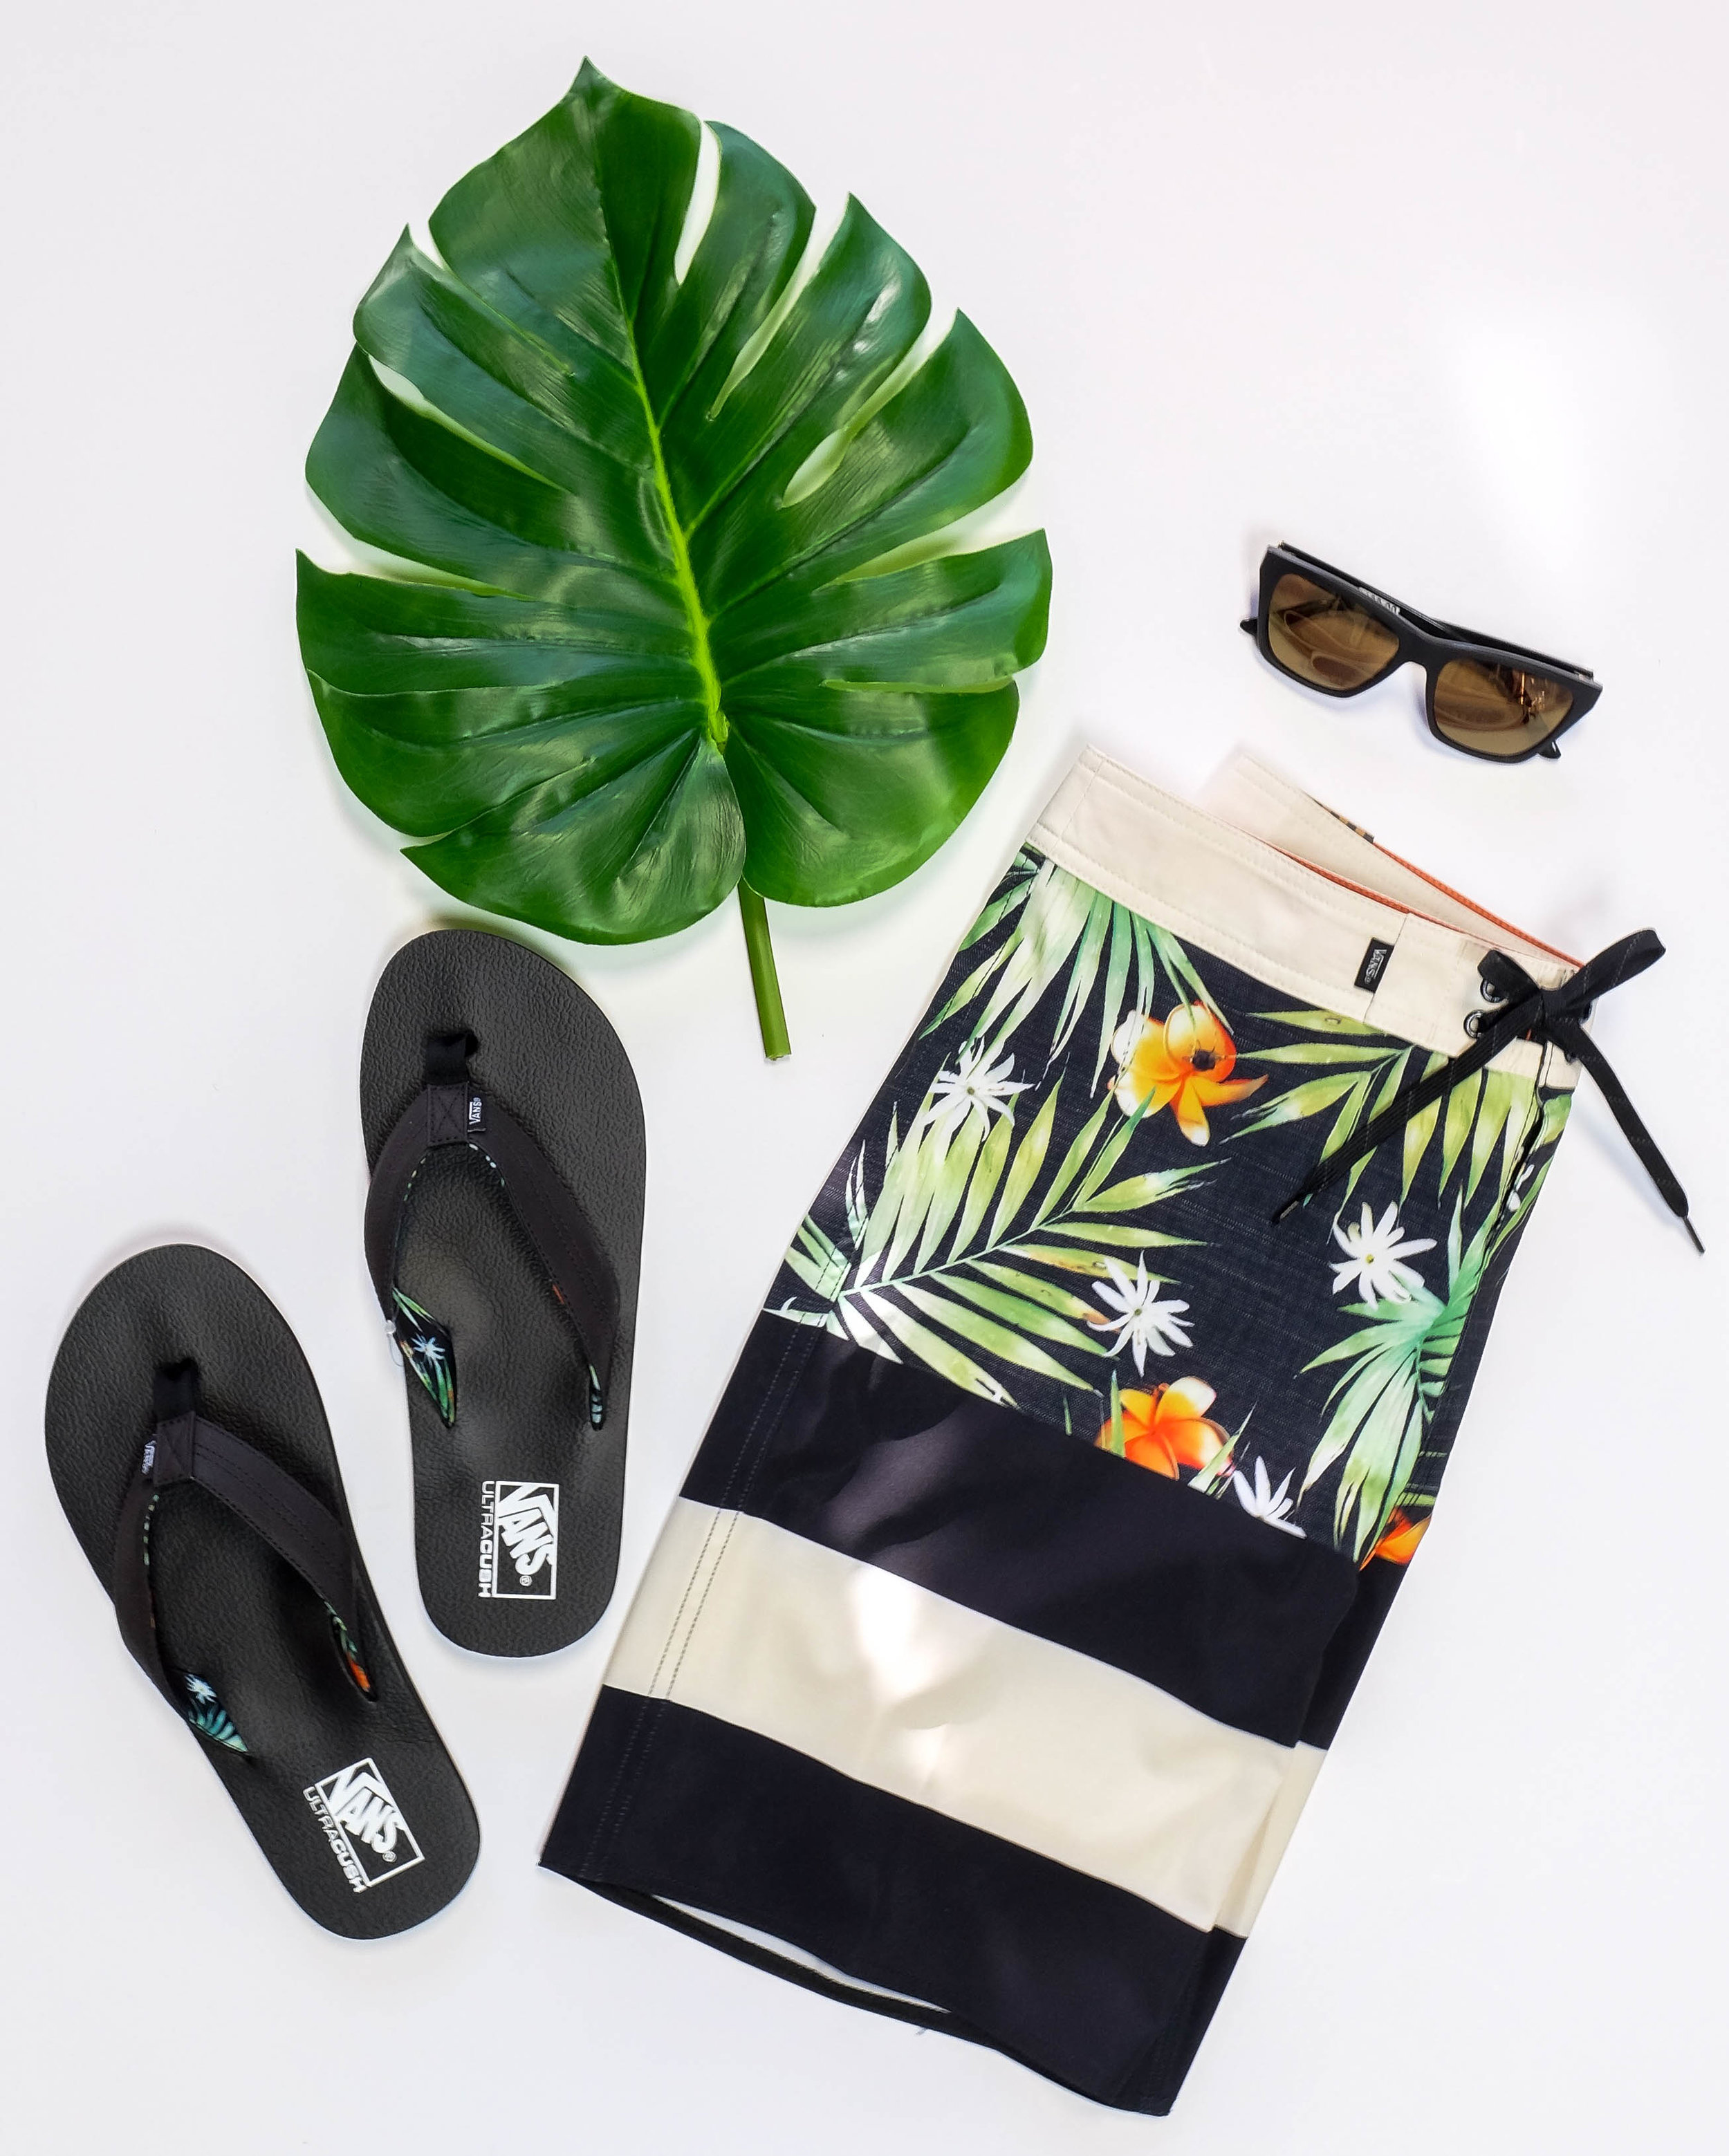 Pictured:  Vans Boardshorts  Vans Flip Flops  Von Zipper Sunglasses  Now guys we know you're just as picky as us when it comes to clothes. This outfit might not be every guys cup of tea but just take a second to look at how rad this Dark Seas button-up is. You can't deny that the subtle rose pattern isn't something you might want to wear on a night out on vacay. Pairing it with popular style, RVCA shorts and pop of red with some Old Skool Vans wouldn't be a bad idea either. Just saying boys, this is something we'd like to see you in ;)